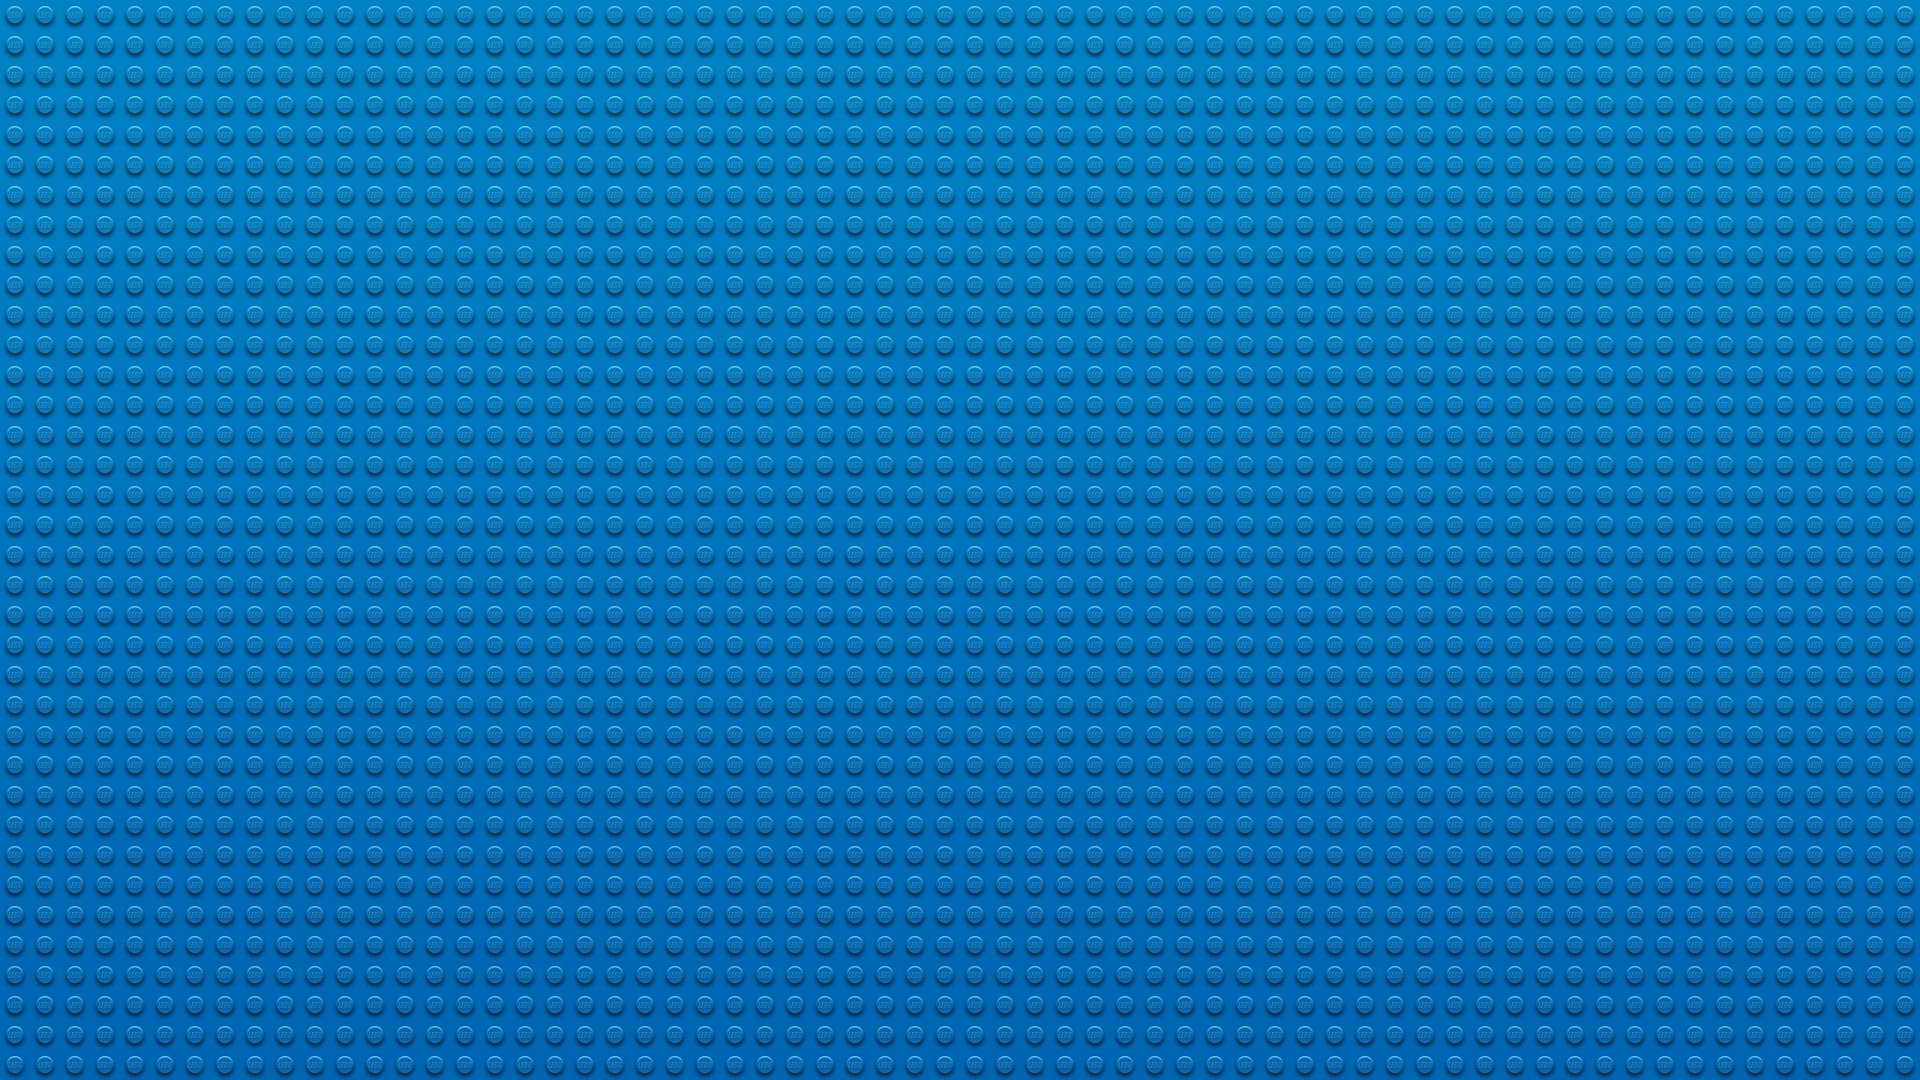 14424 textura azul wallpaper - photo #13